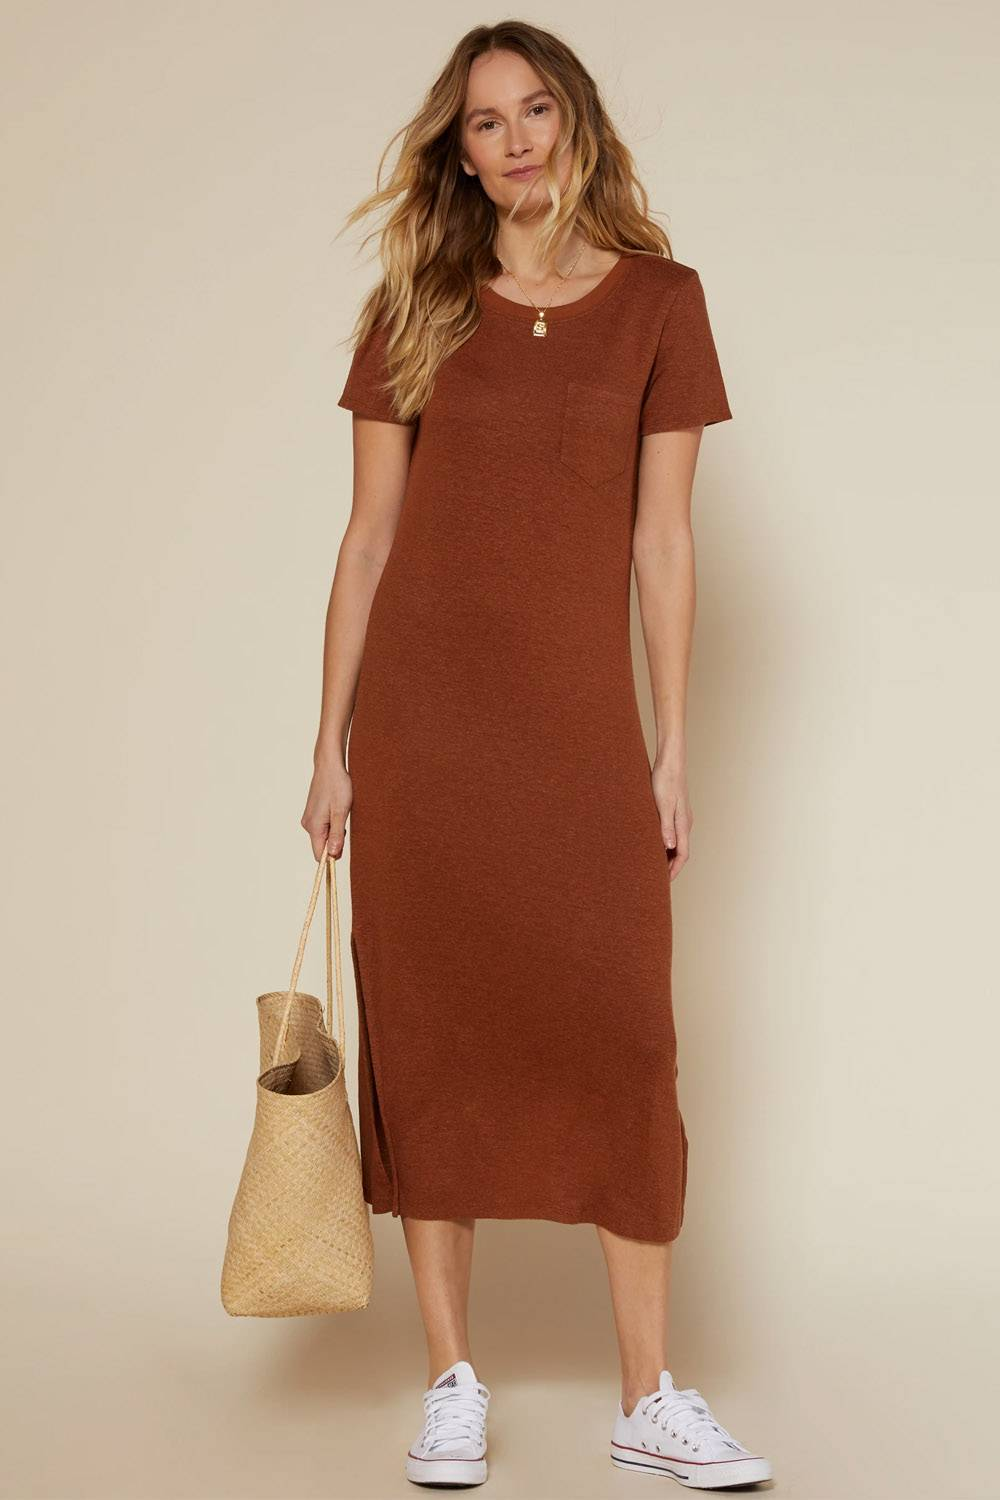 outerknown eco-friendly tencel clothes